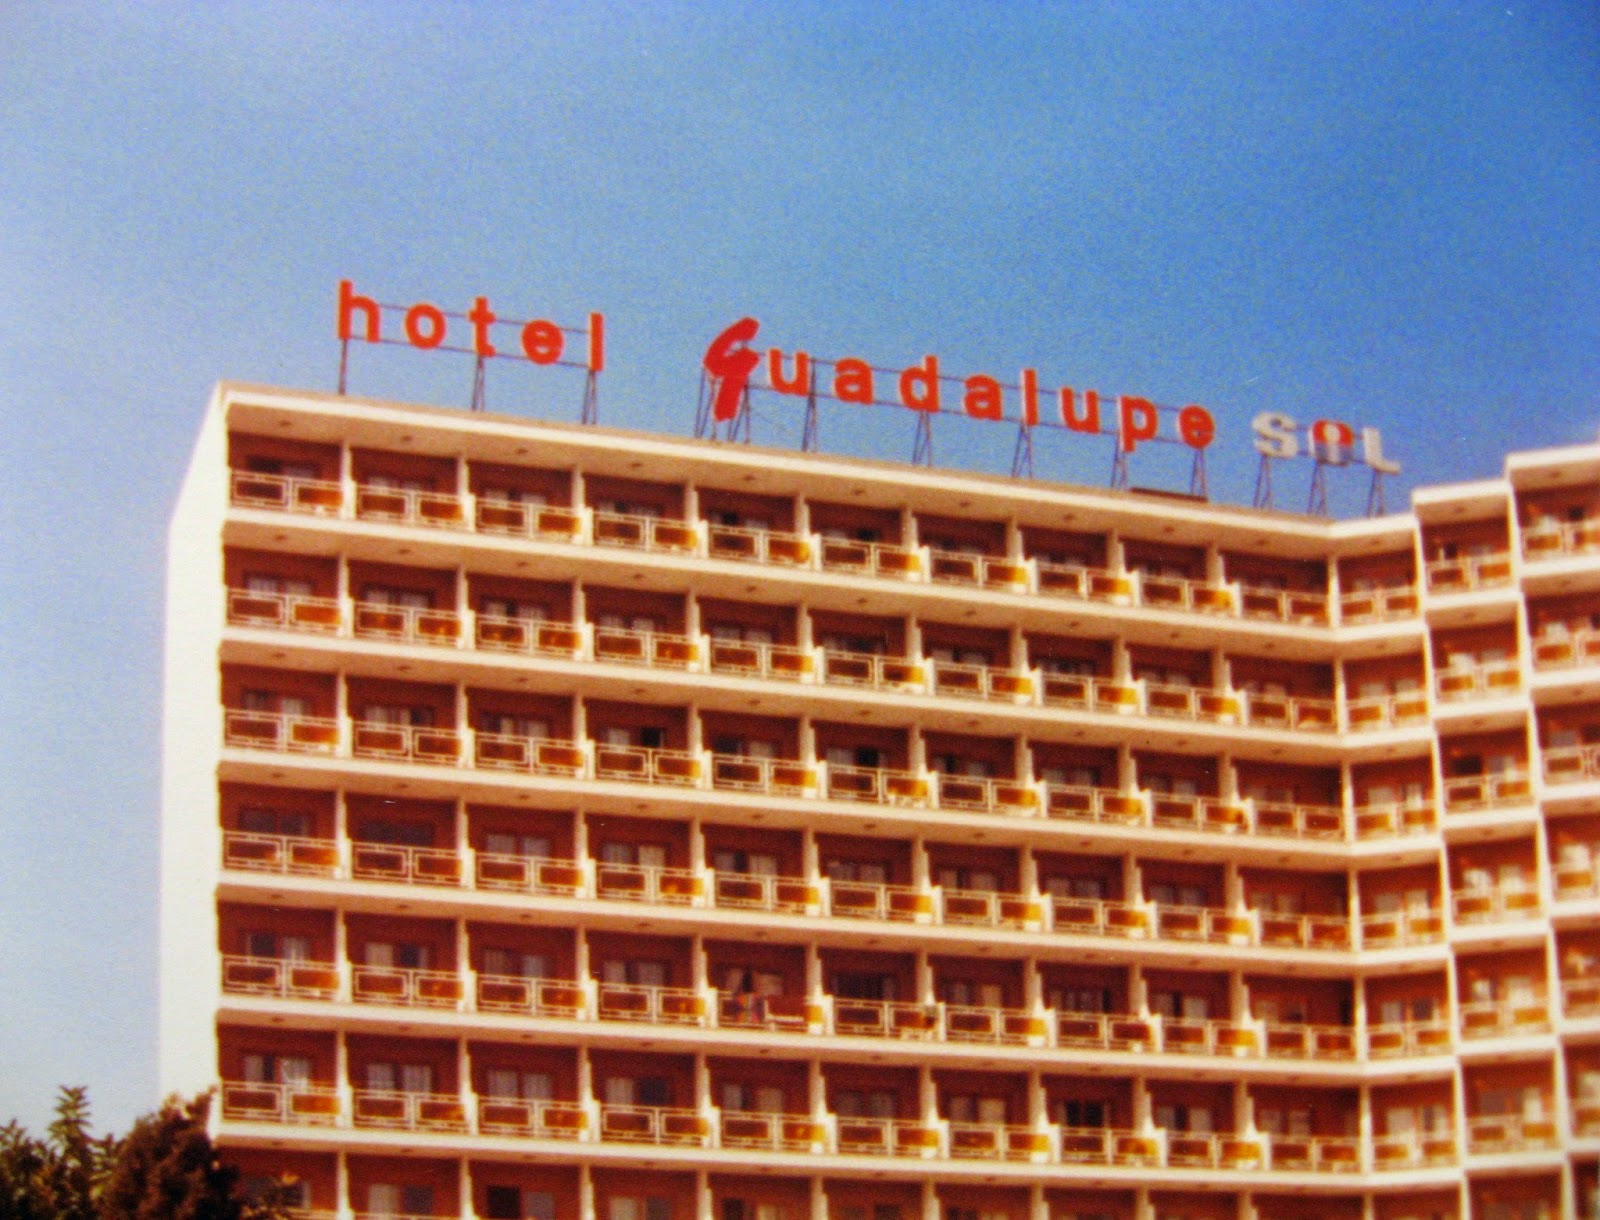 The Hotel we all stayed at during our rampage... LoL February 1983